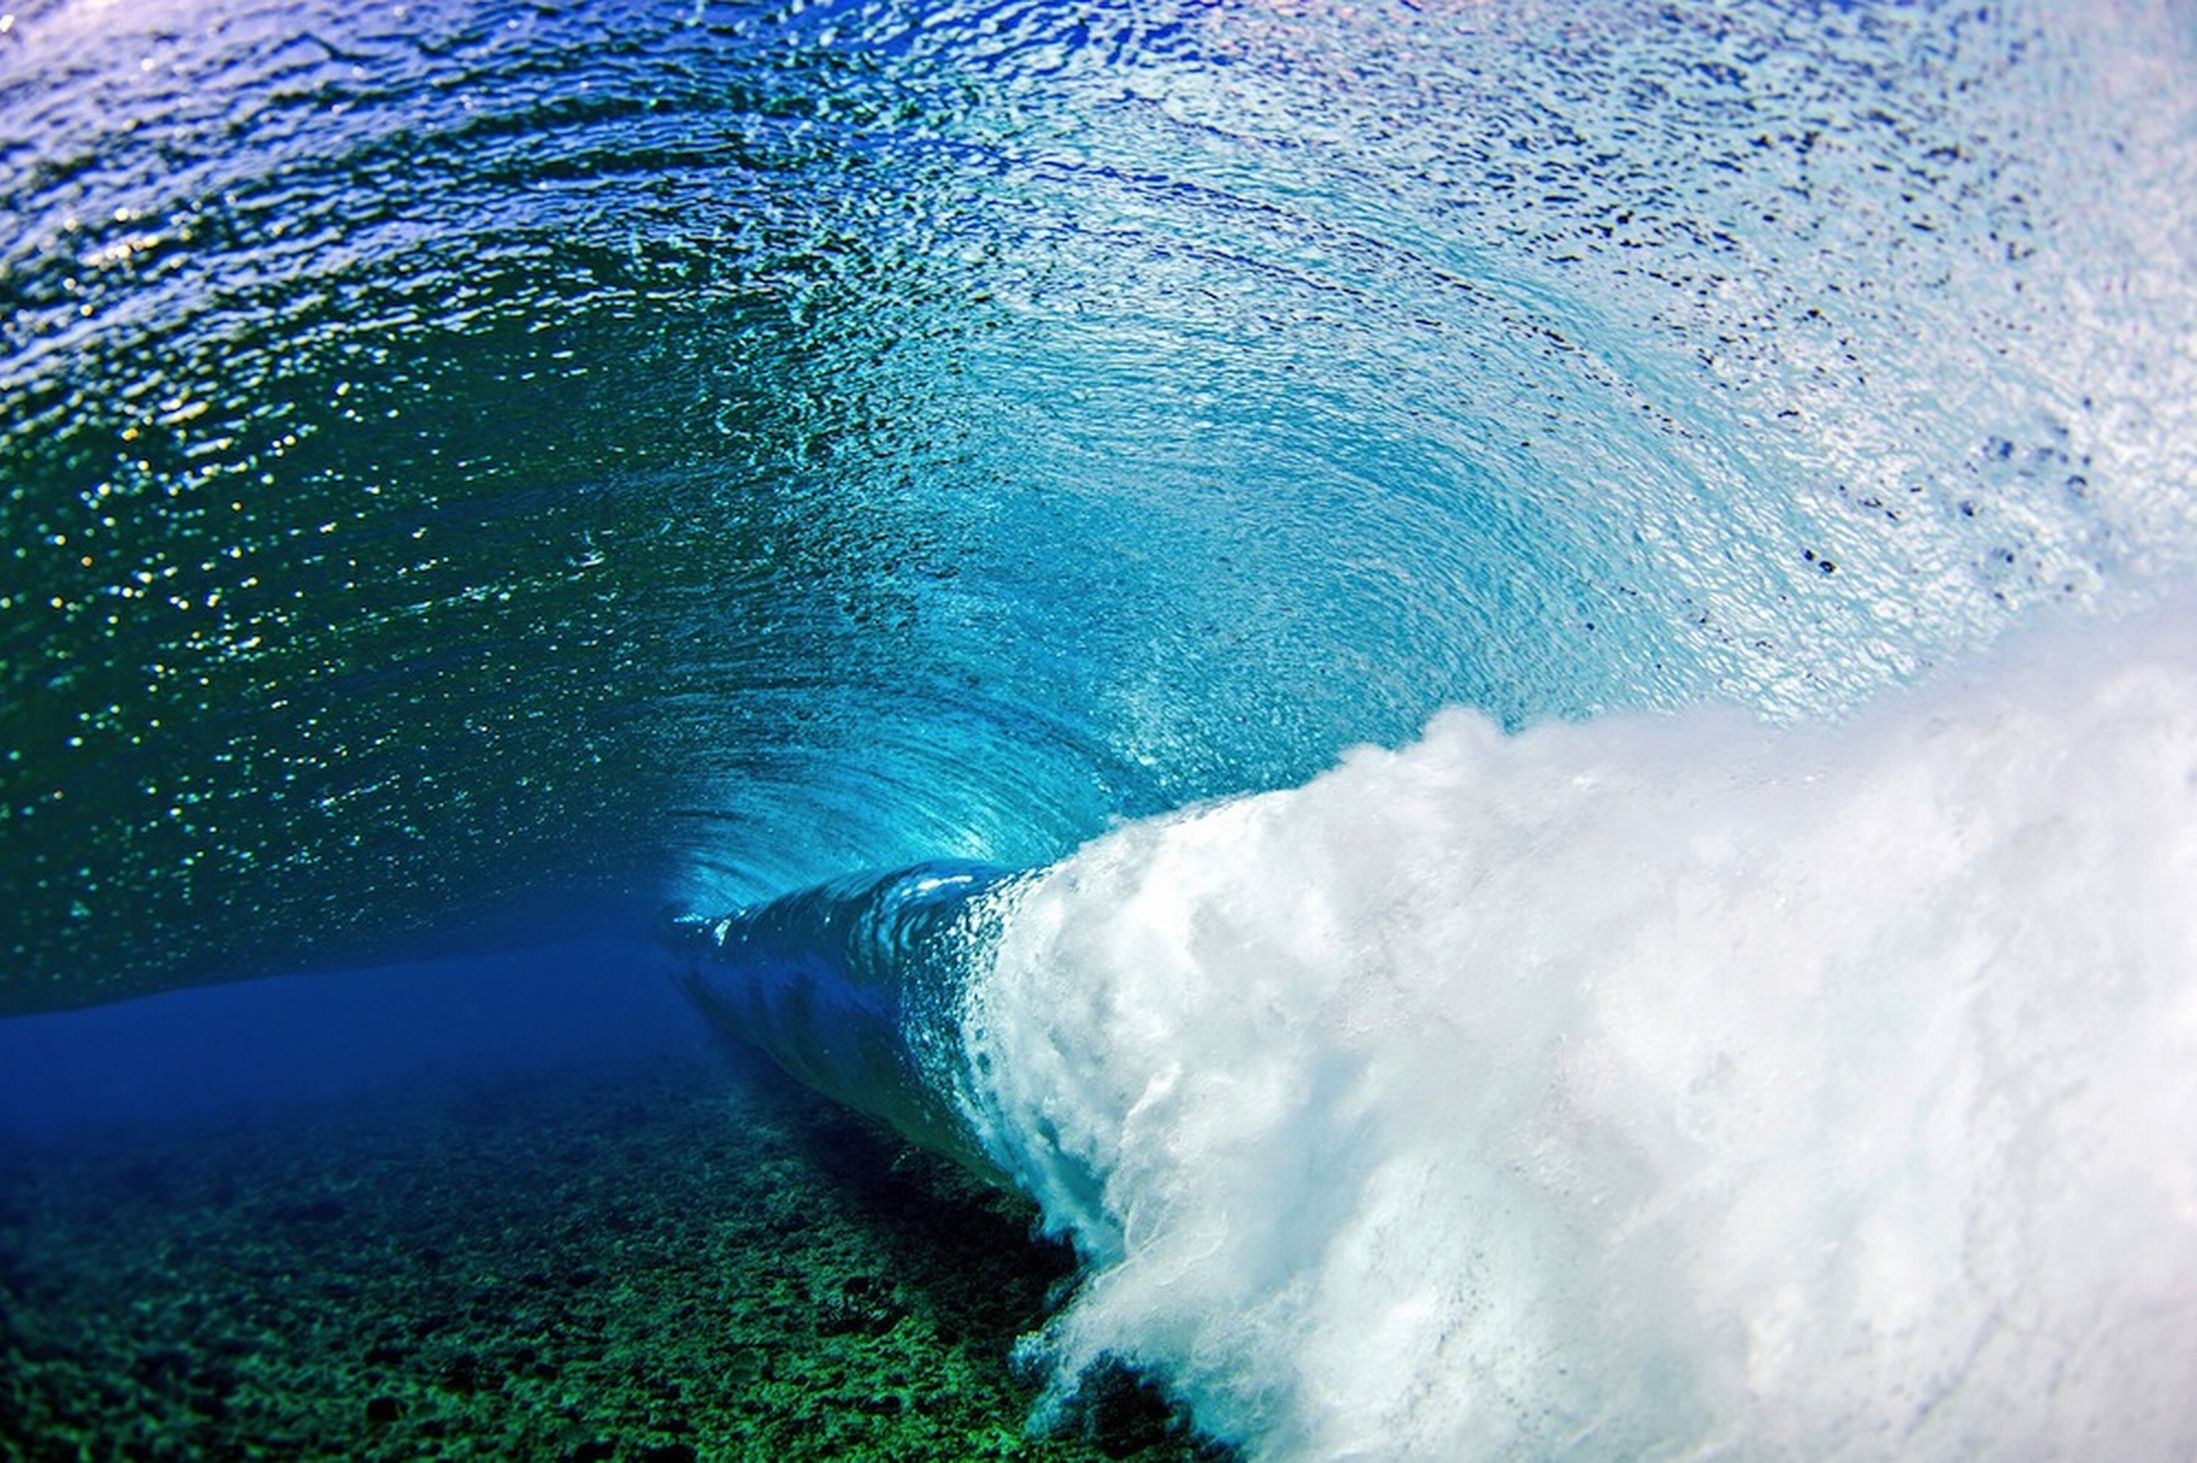 Daredevil surfer Clark Little   Bright Light at the end of the tunnel 2197x1463